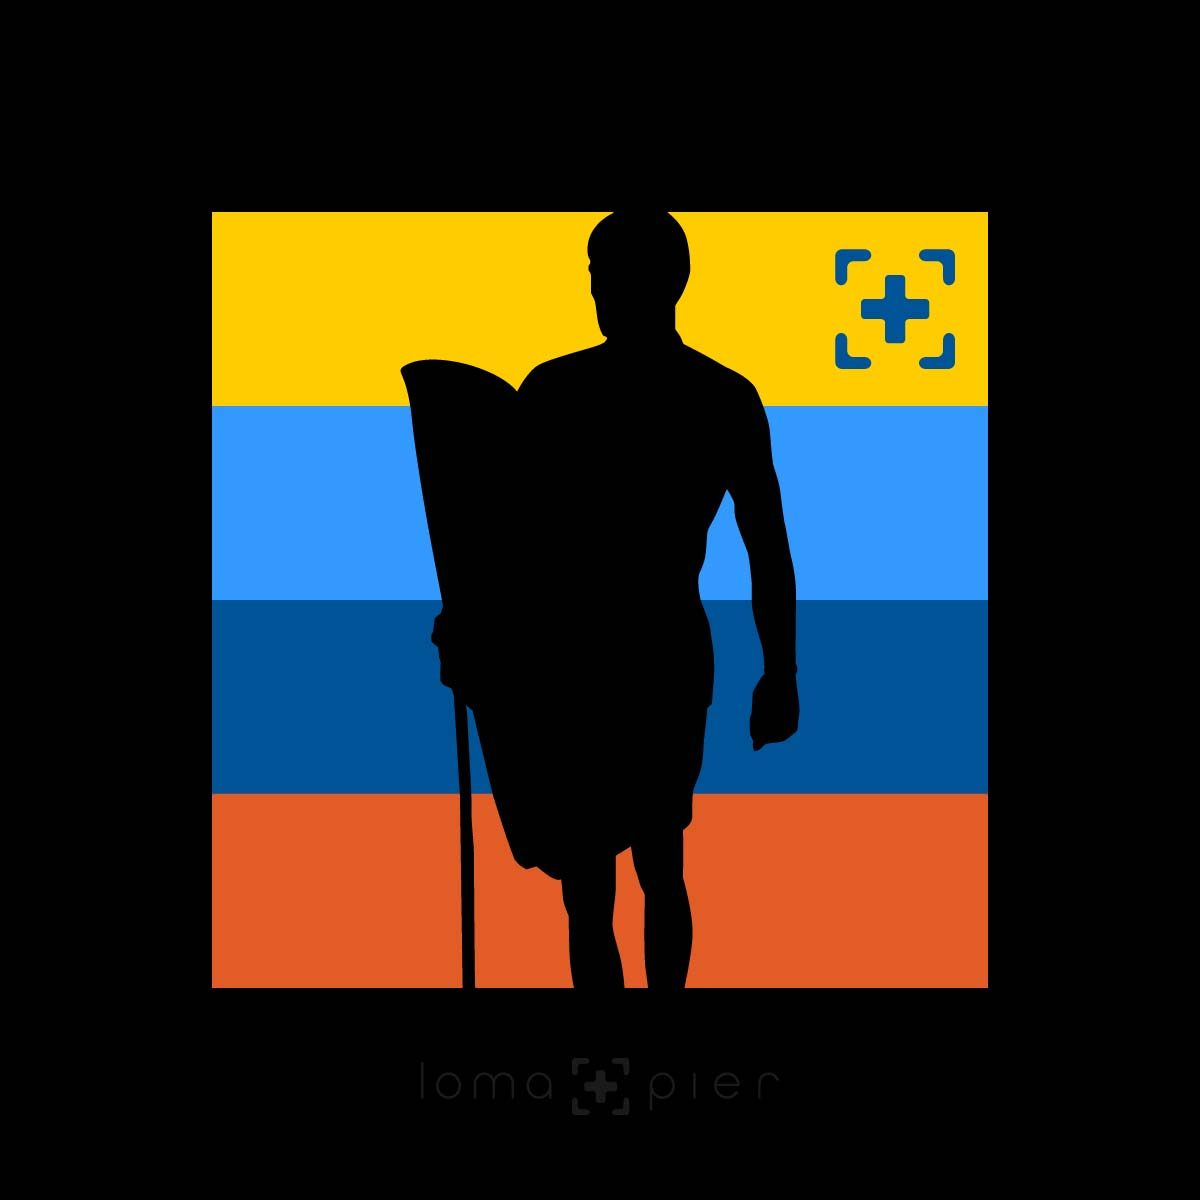 SON OF A BEACH surfer icon design by loma+pier hat store